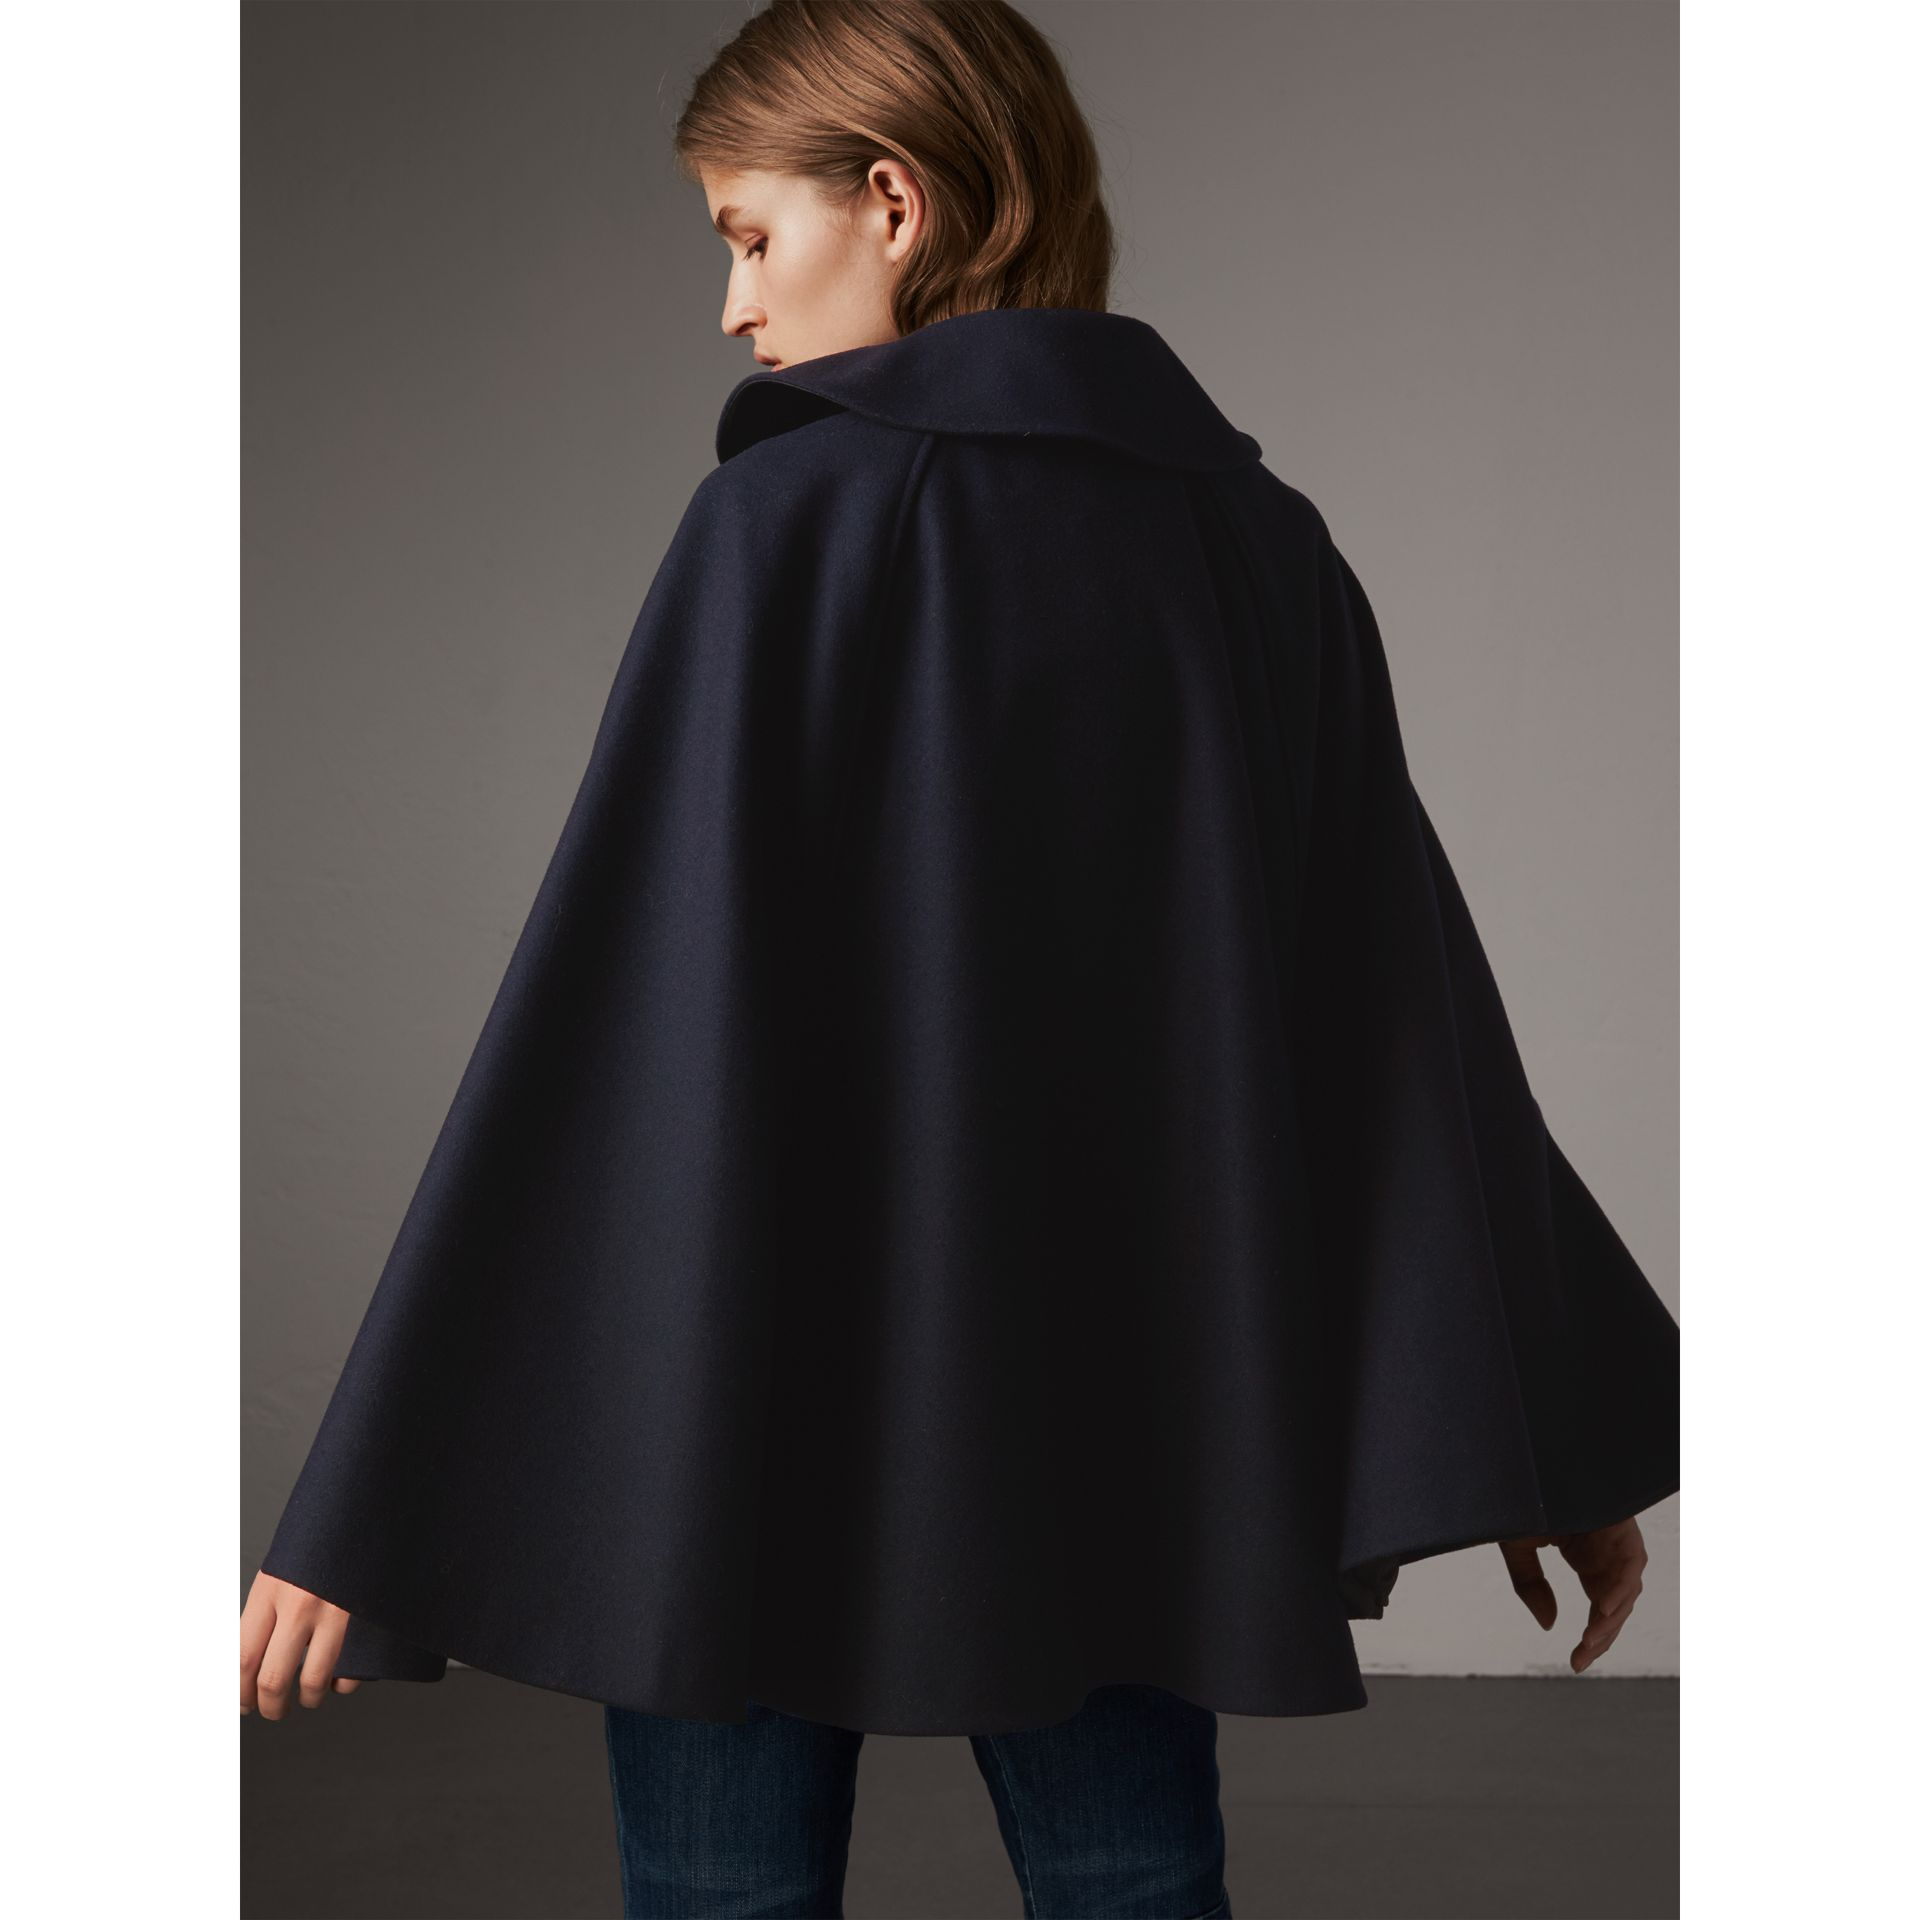 Ruffle Collar Wool Cape in True Navy - Women | Burberry Canada - gallery image 2